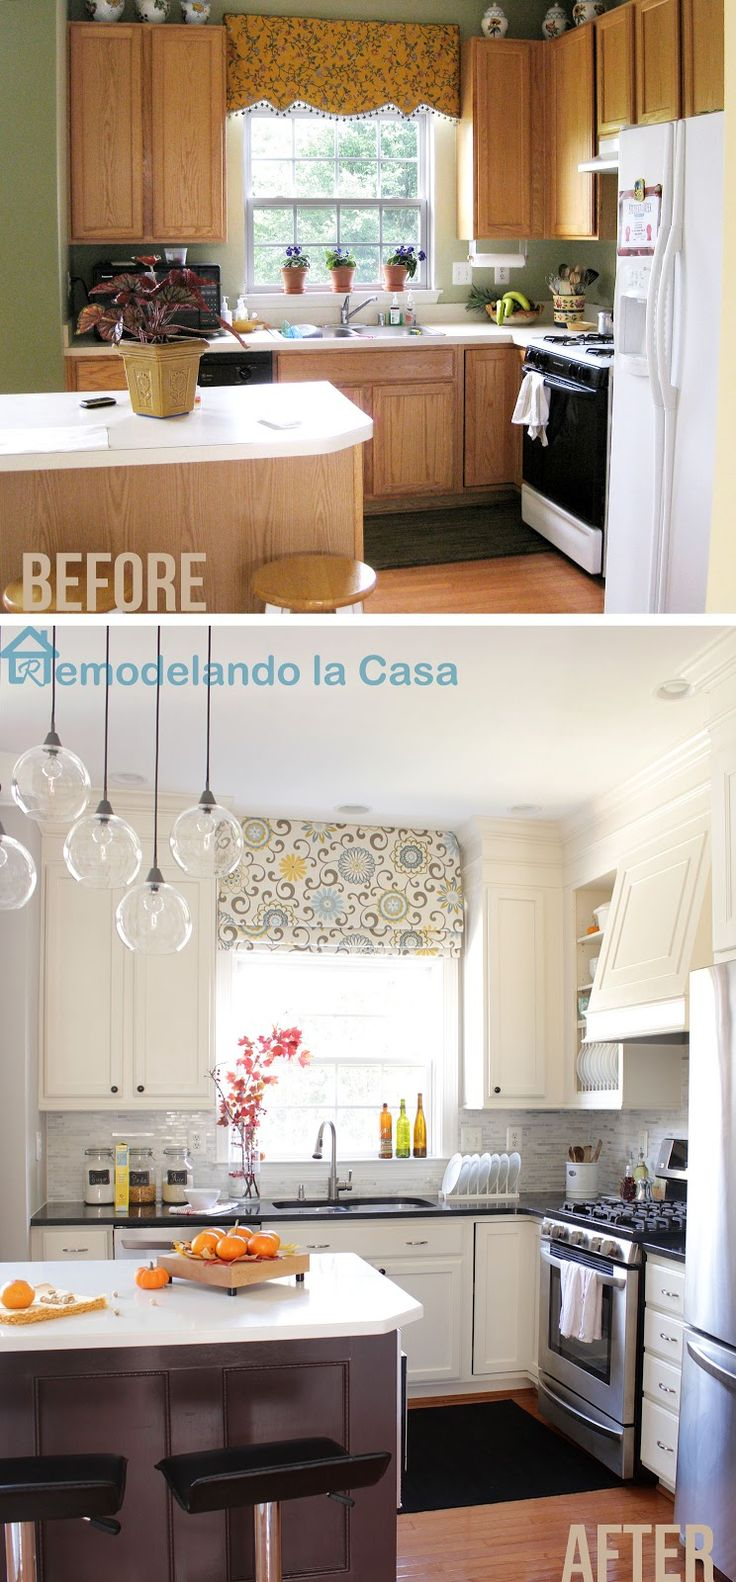 Kitchen Makeover on a budget. Painted cabinets, closed space above cabinets, diy range hood and fridge enclosure and more.